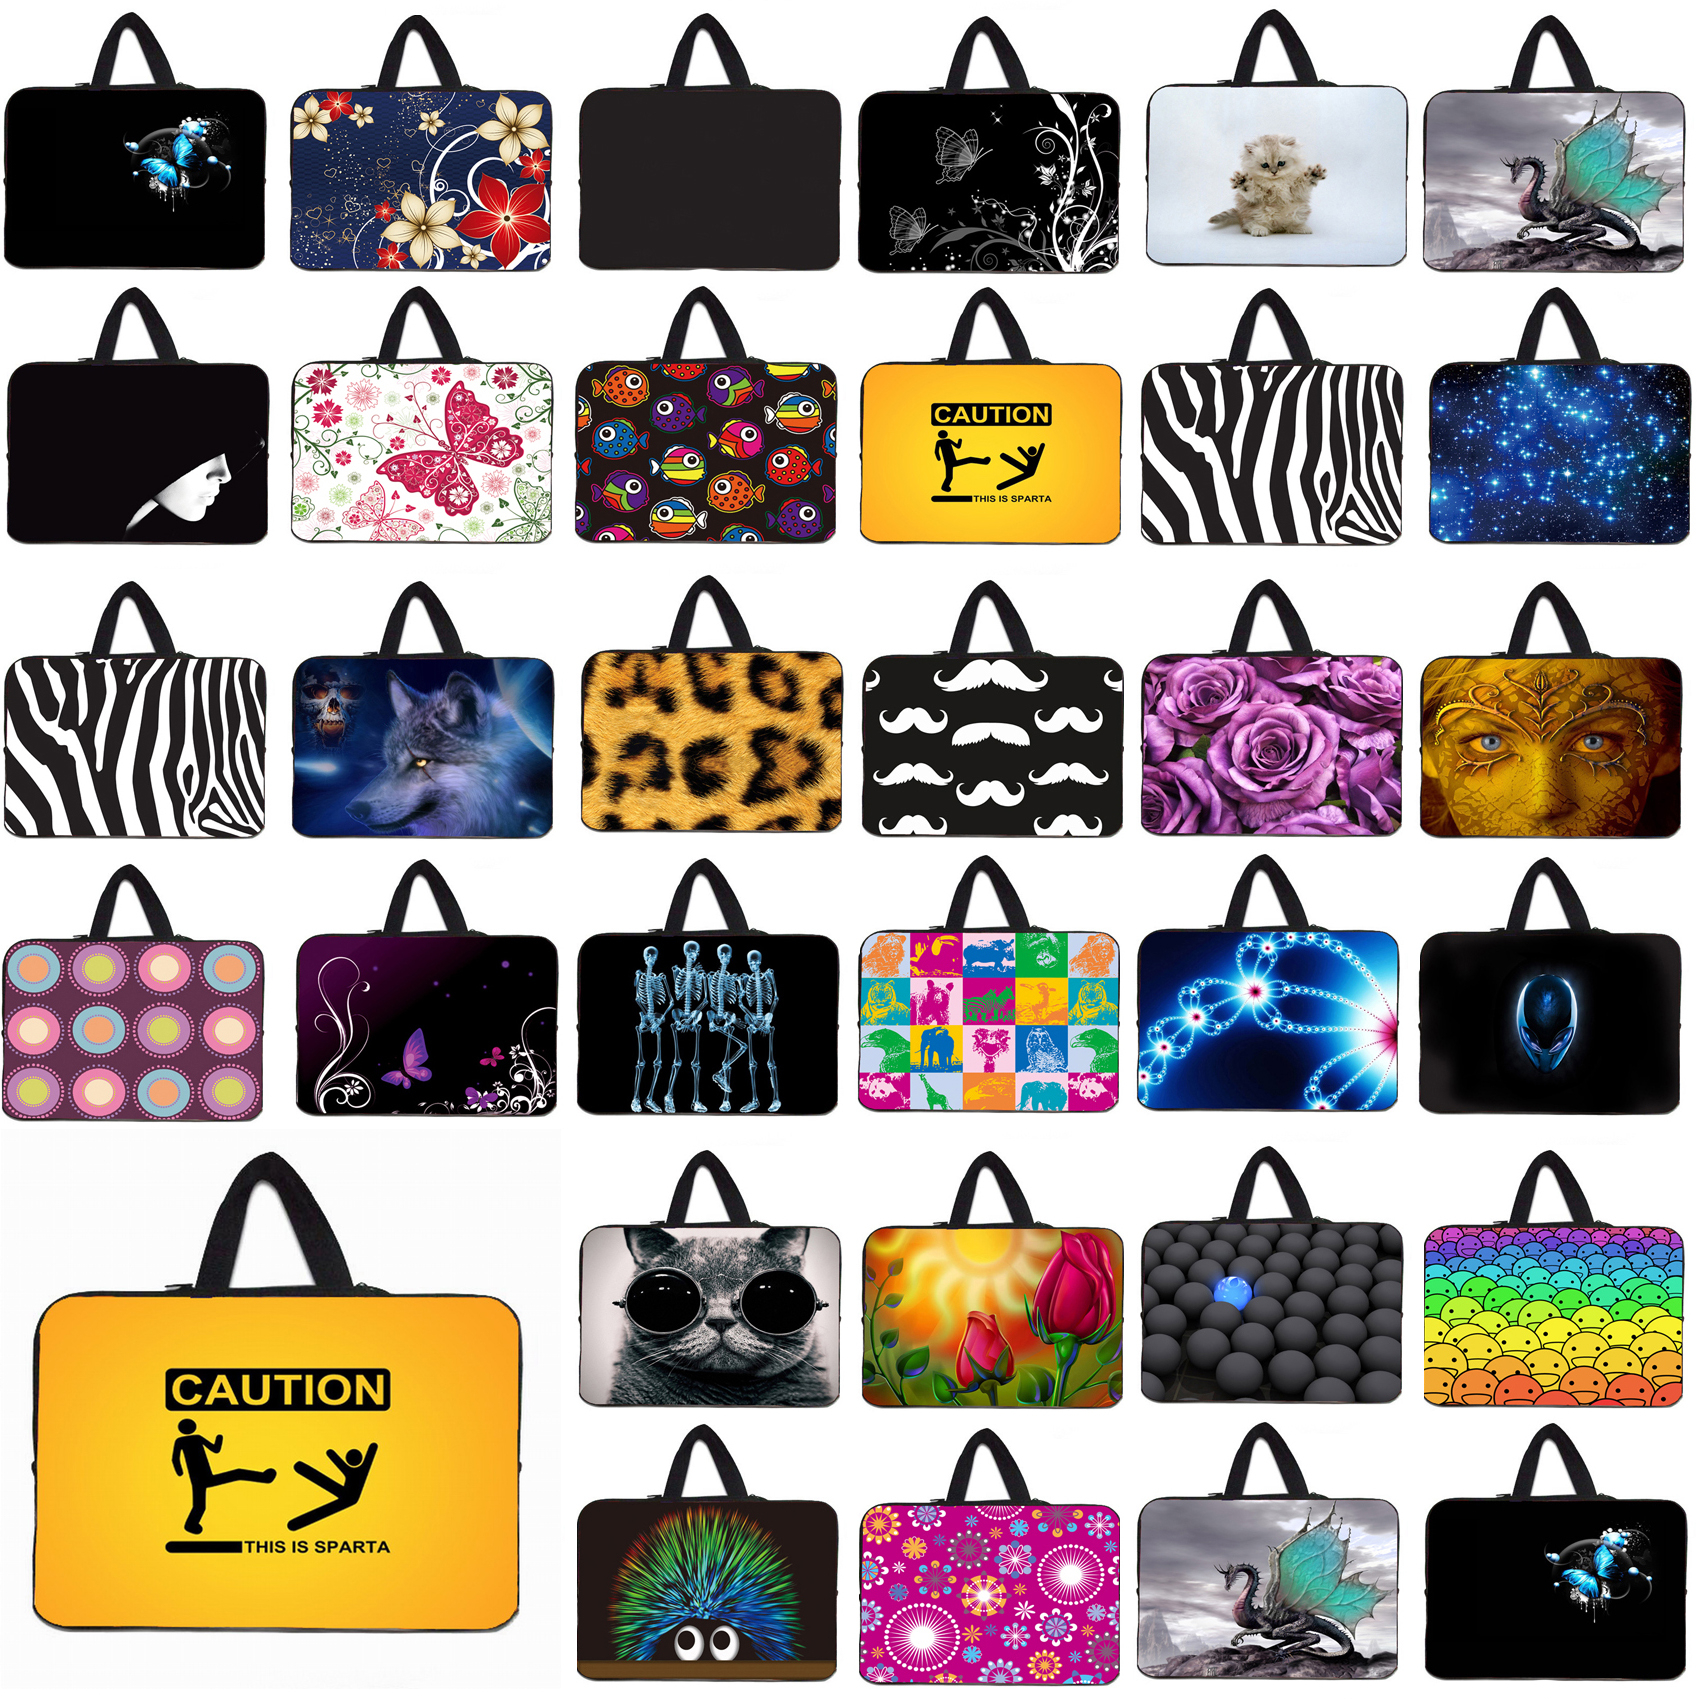 Mini PC Netbook Shell Case Bags For Apple iPad 1 2 3 4 9.7 Netbook Laptops Inner Pouch Bag 10.1 12 13 14 15 16 17 Computer Bag